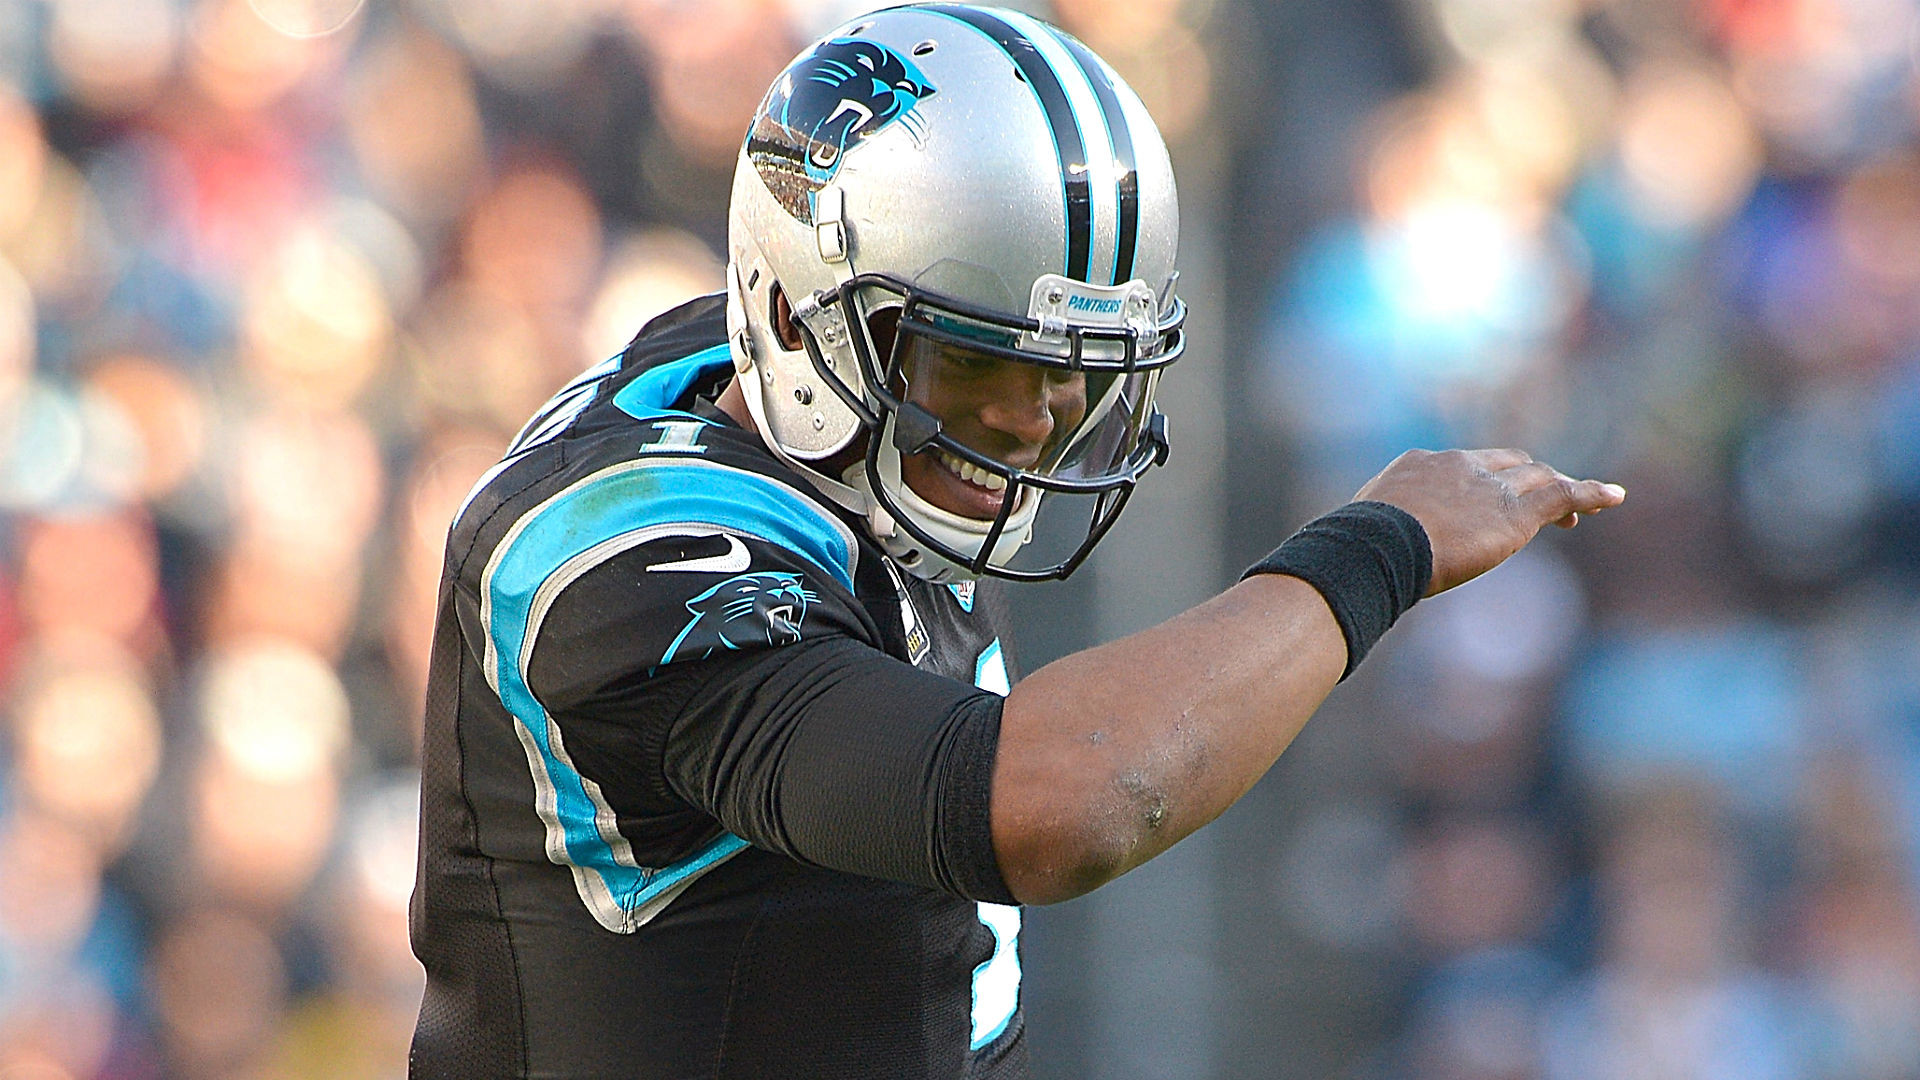 1920x1080 Likely NFL MVP Cam Newton has dabbed his way to the Super Bowl. photo: